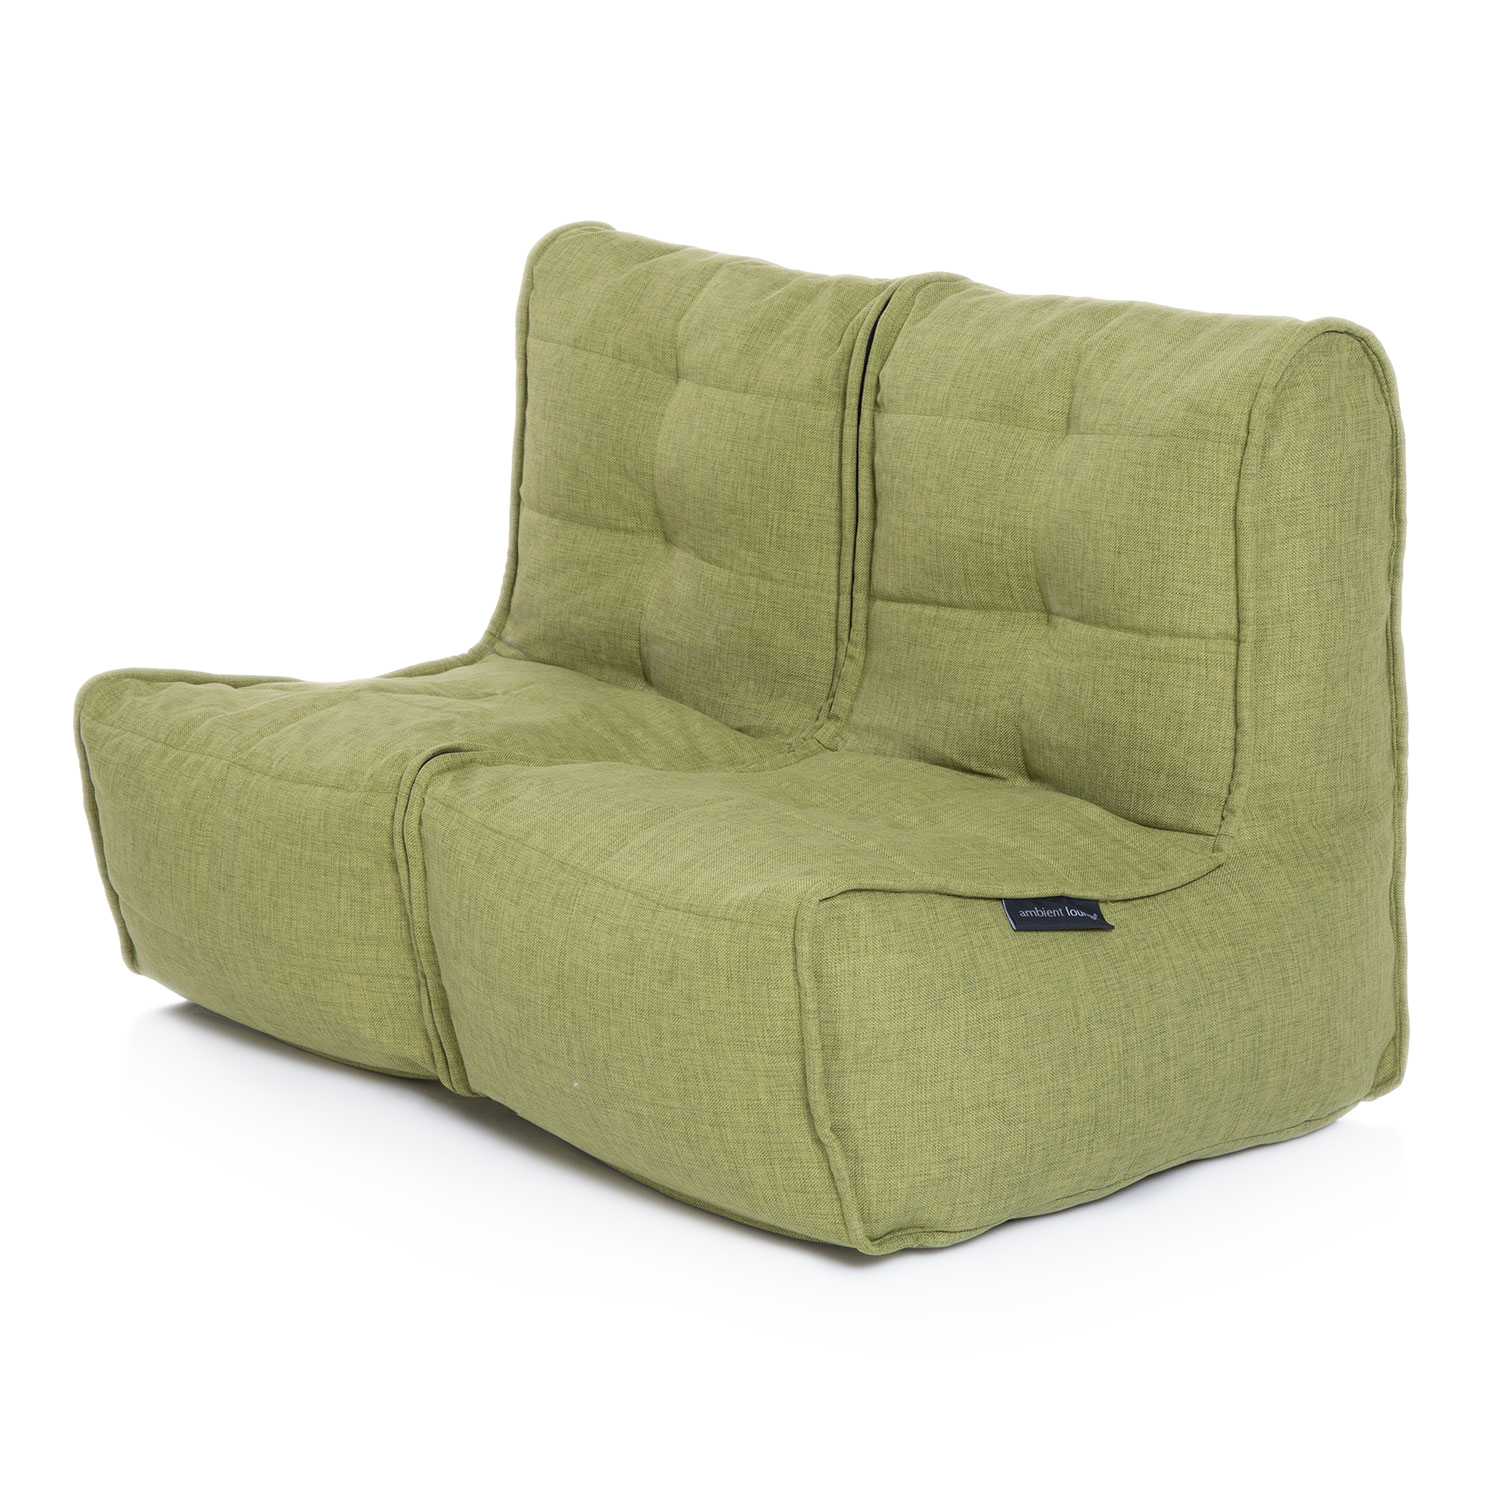 2 Seater Green Sofa Designer Bean Bag Couch Green